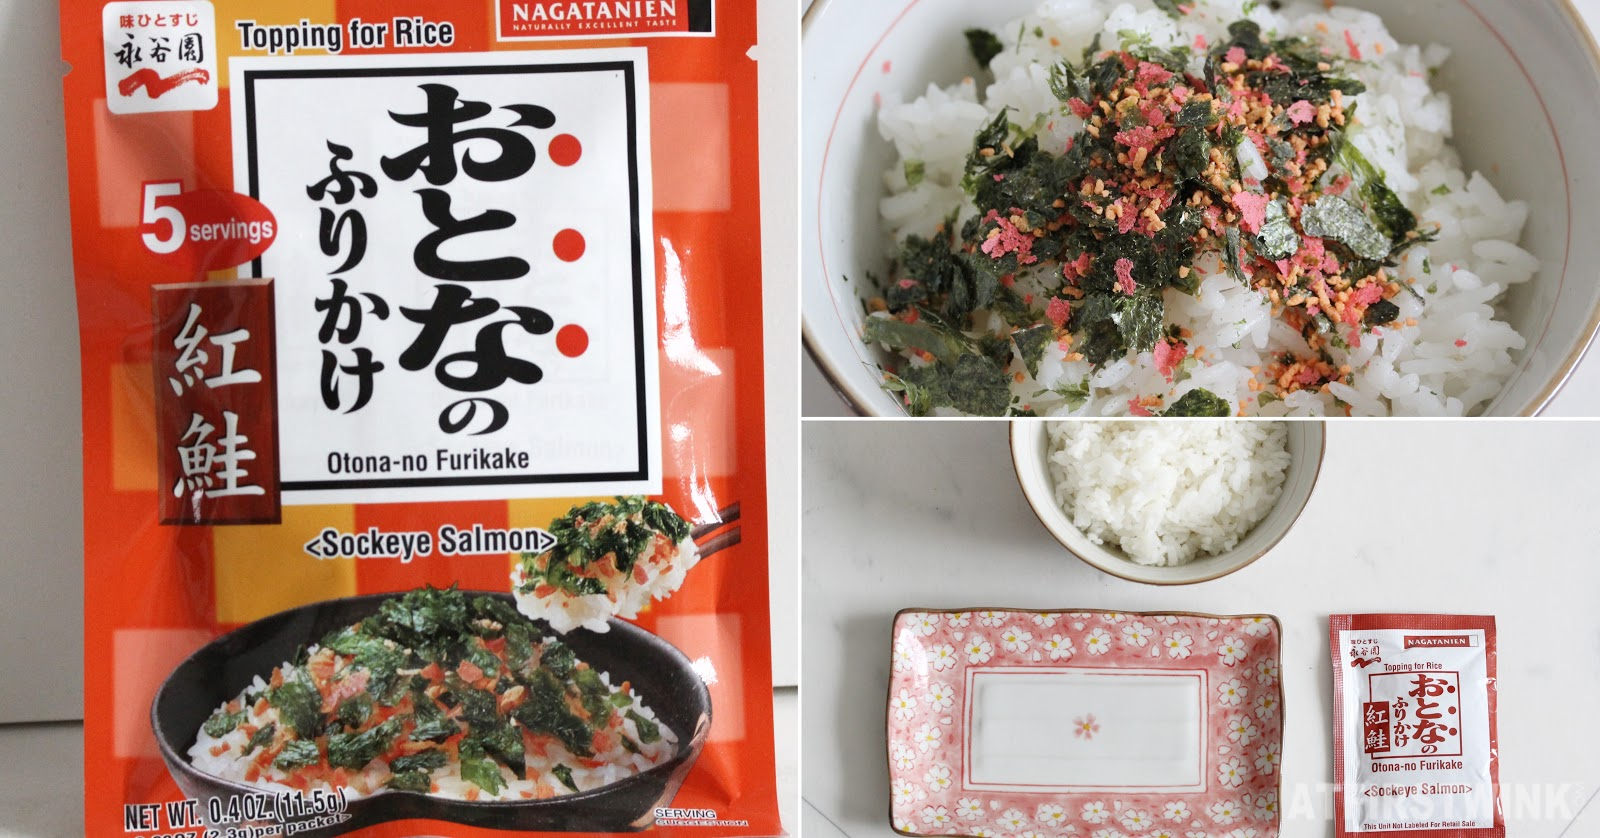 Nagatanien topping for rice furikake sockeye salmon flakes nori